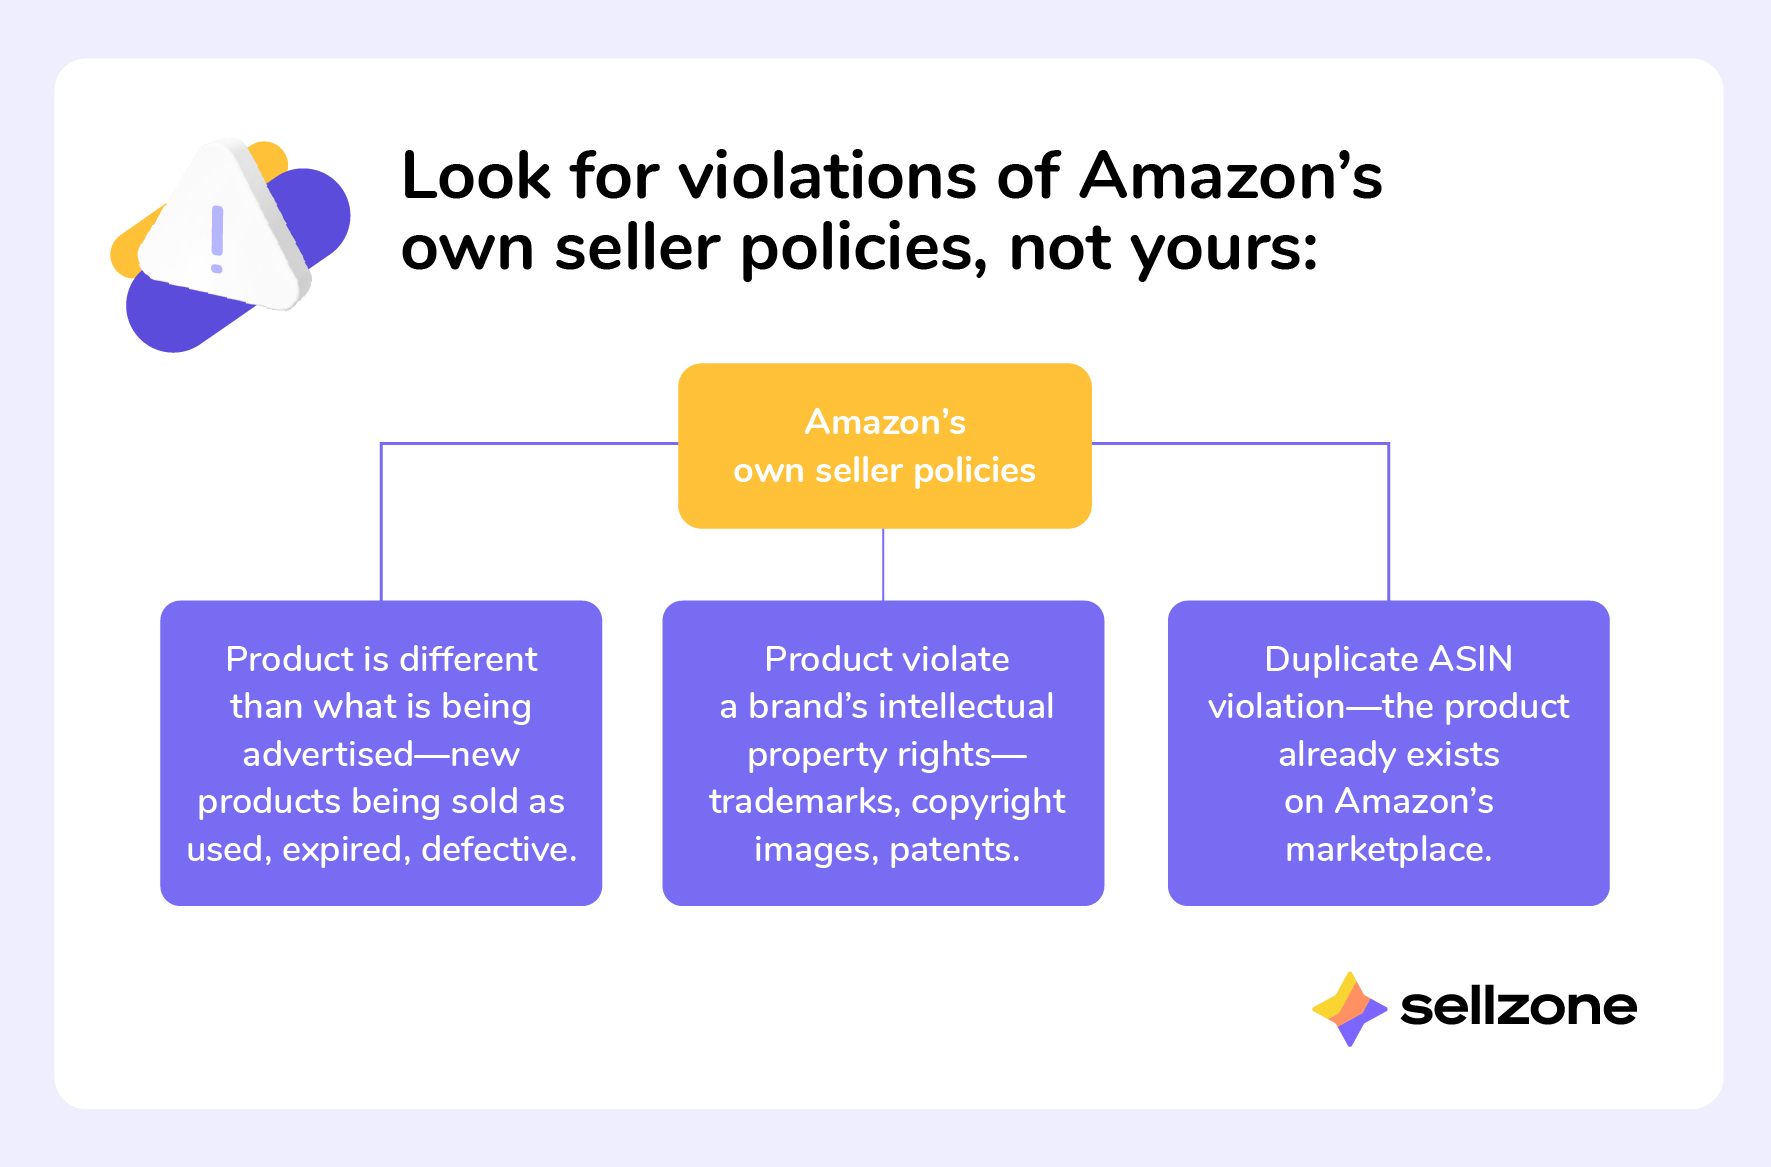 How Does Amazon View Unauthorized Listings?